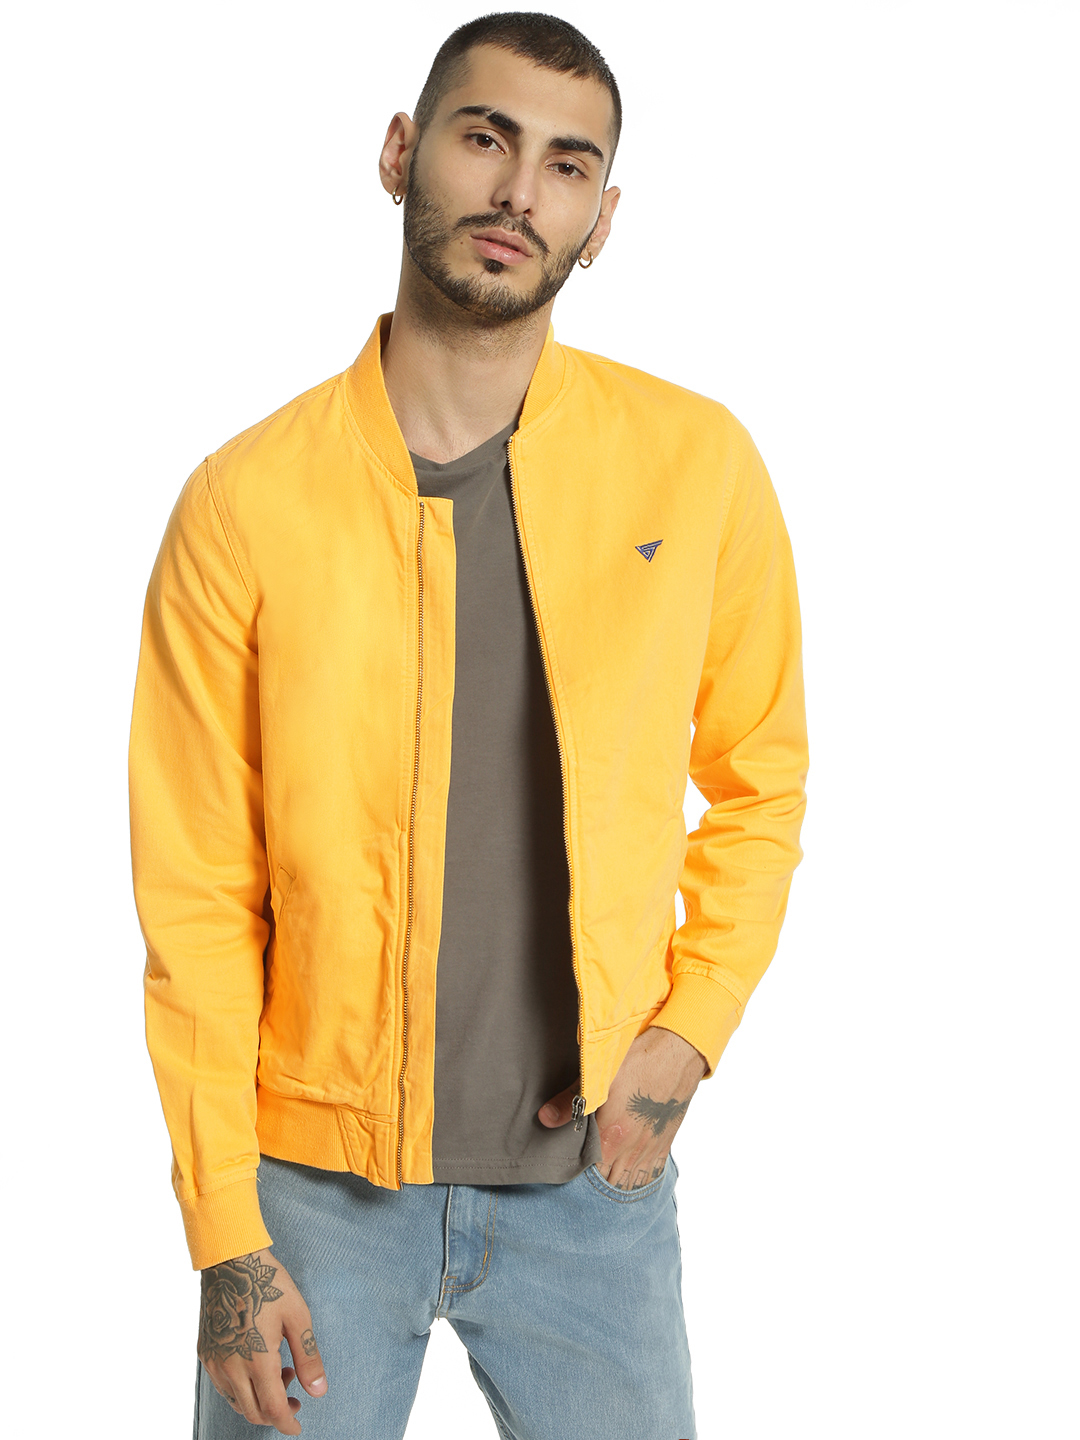 Blue Saint Yellow Overdyed Long Sleeve Bomber Jacket 1